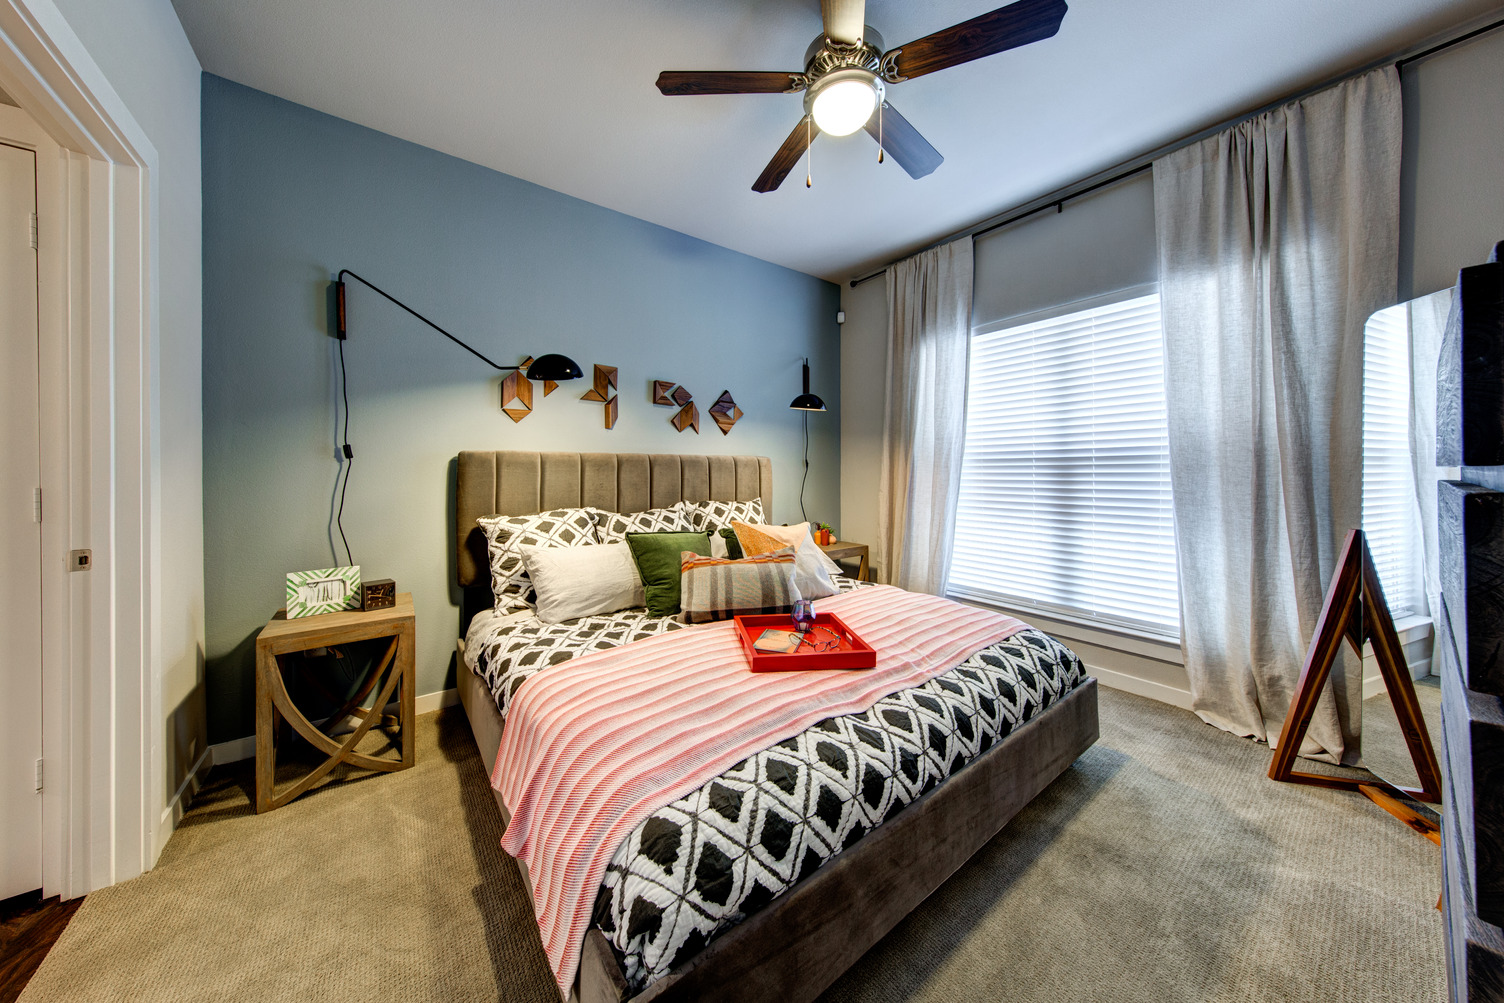 Model apartment bedroom with queen bed, ceiling fan, and carpeting